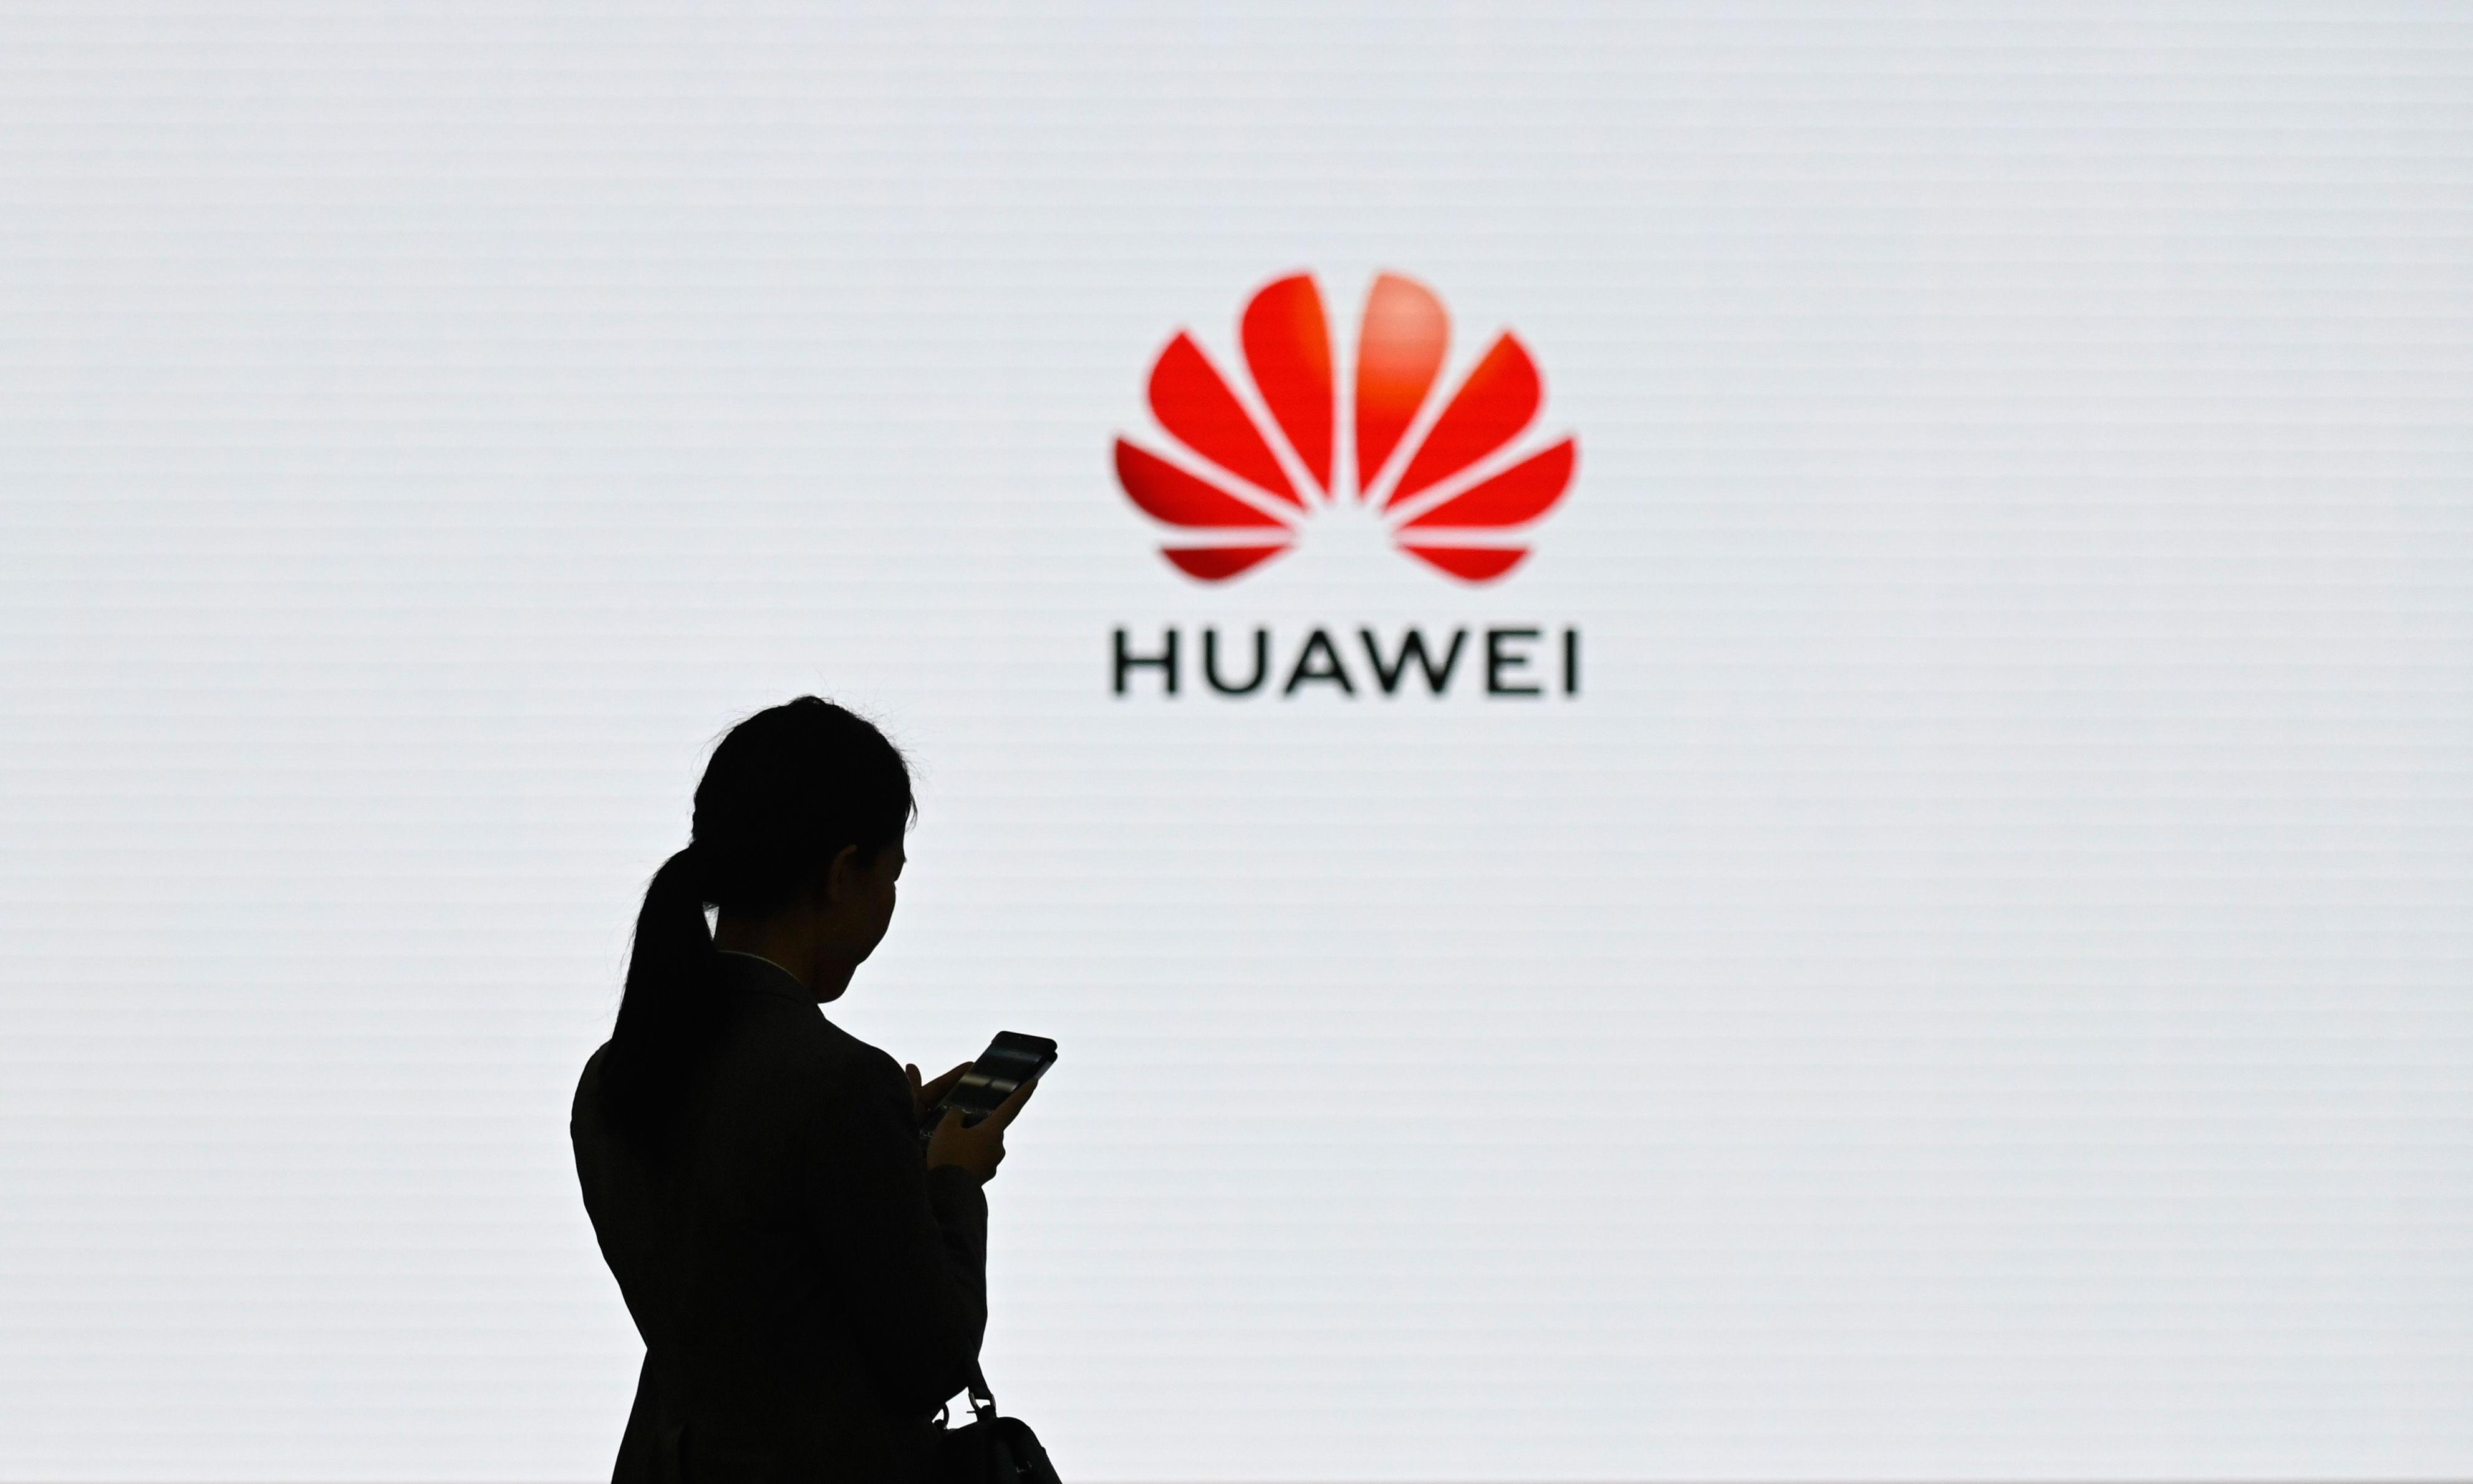 Huawei plans to deploy high-speed internet to Canada's remote regions